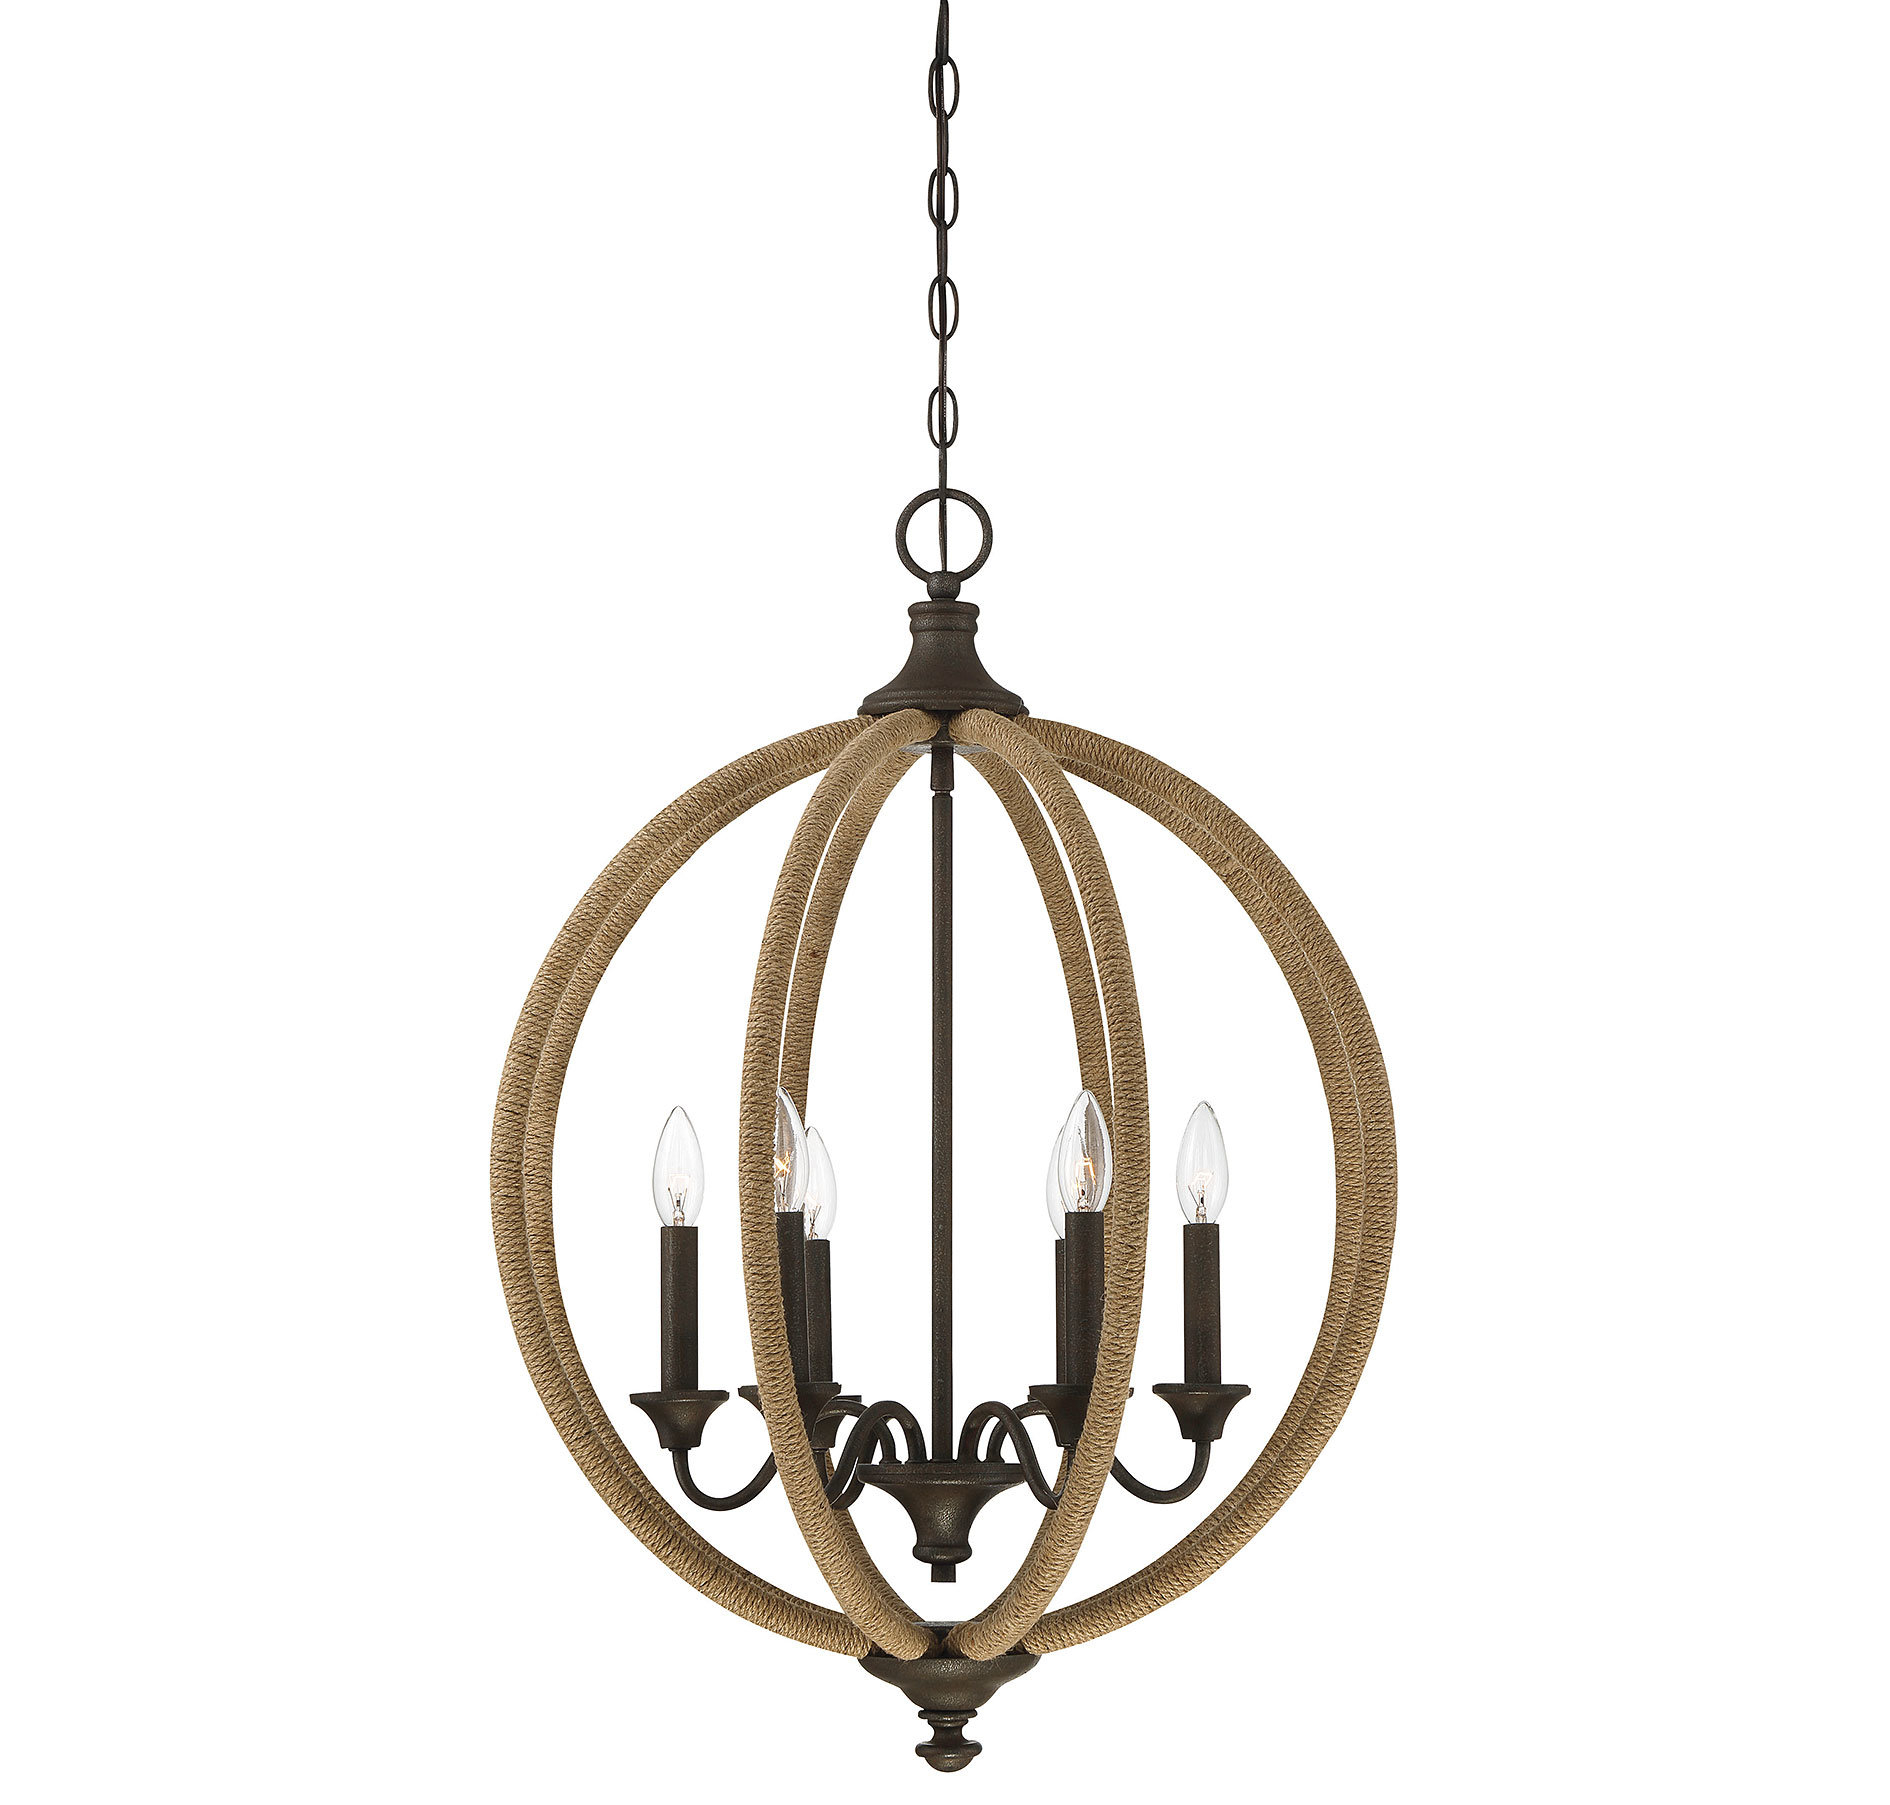 Georgianna 6-Light Globe Chandelier with regard to Joon 6-Light Globe Chandeliers (Image 7 of 30)